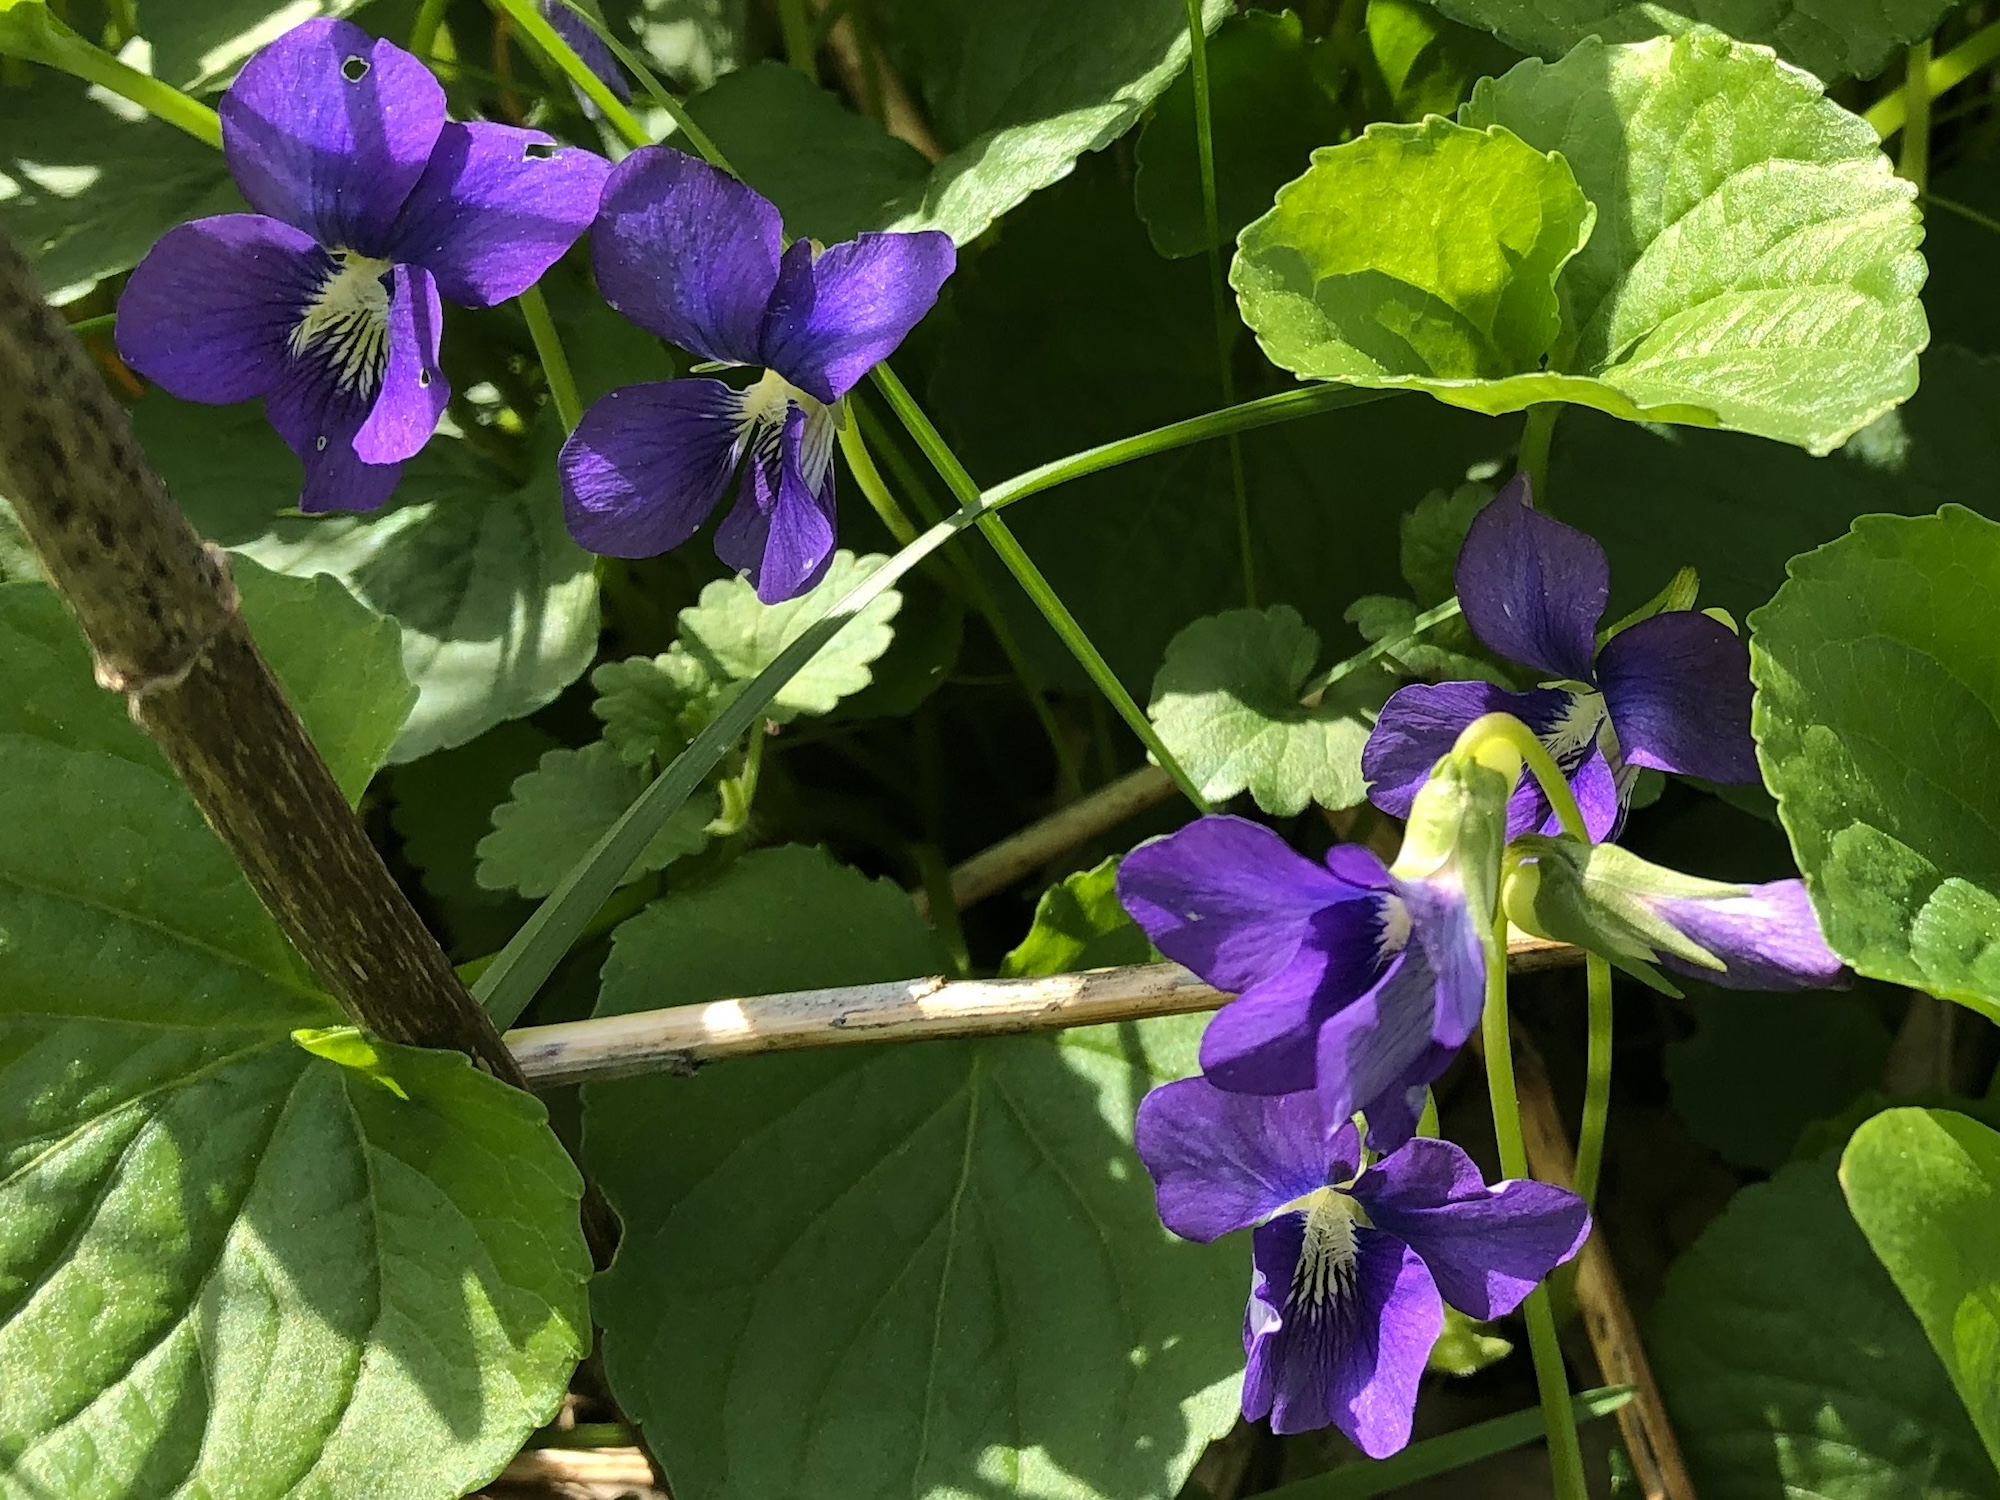 Wood Violets near Council Ring, the Oak Savanna and the Duck Pond on May 7, 2019.